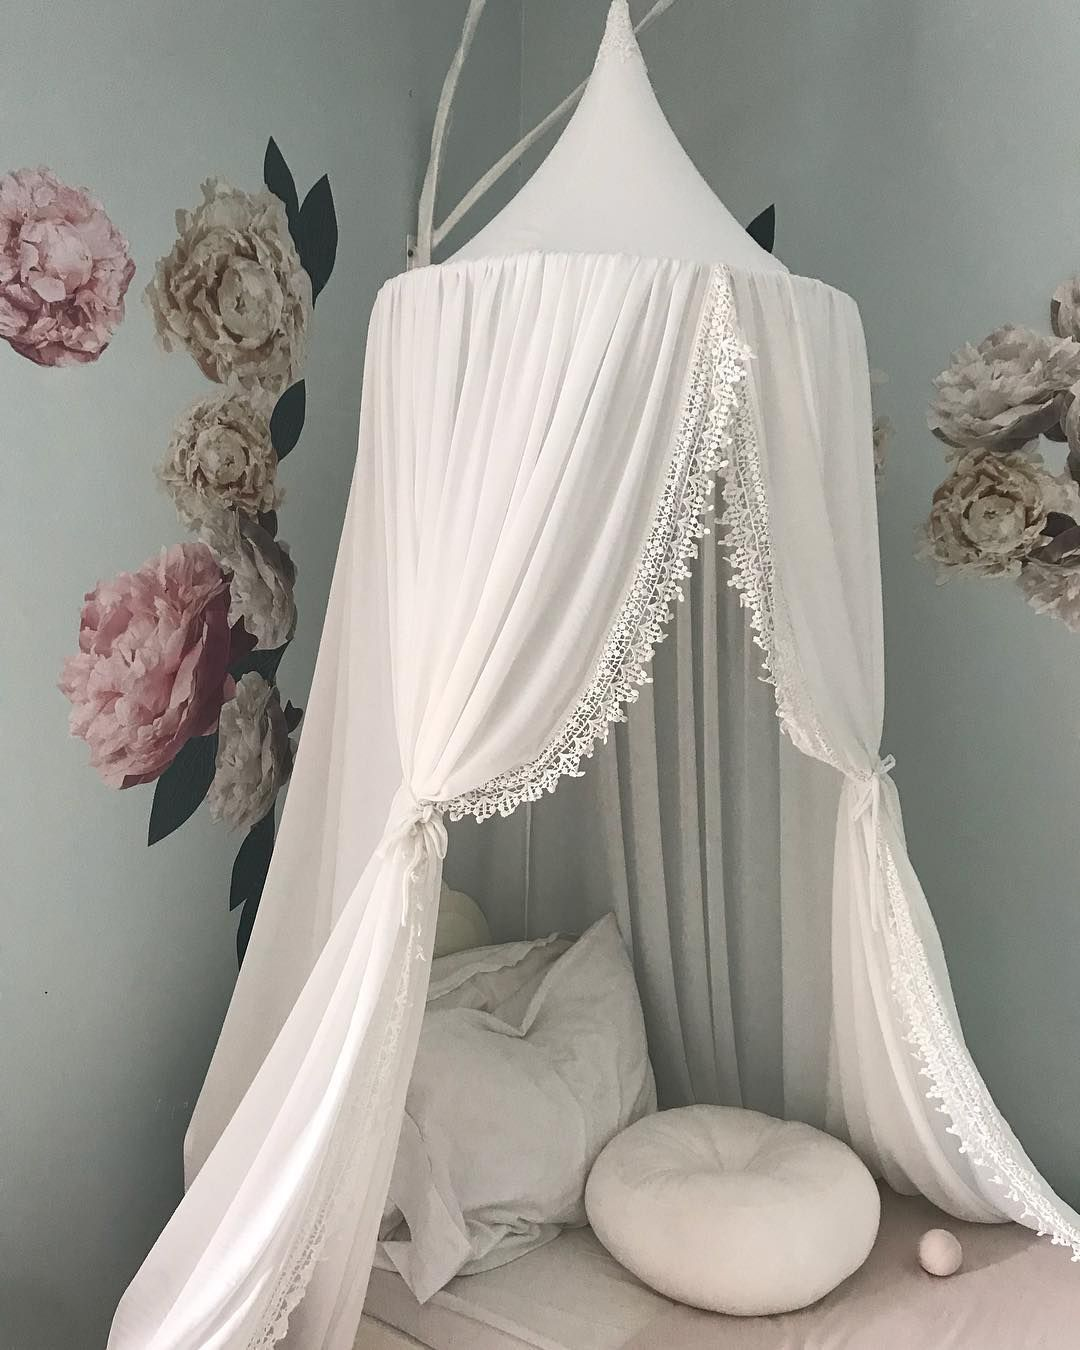 Pure white lace canopy .missnmaster.com & Pure white lace canopy www.missnmaster.com | Kidu0027s Canopies in 2019 ...